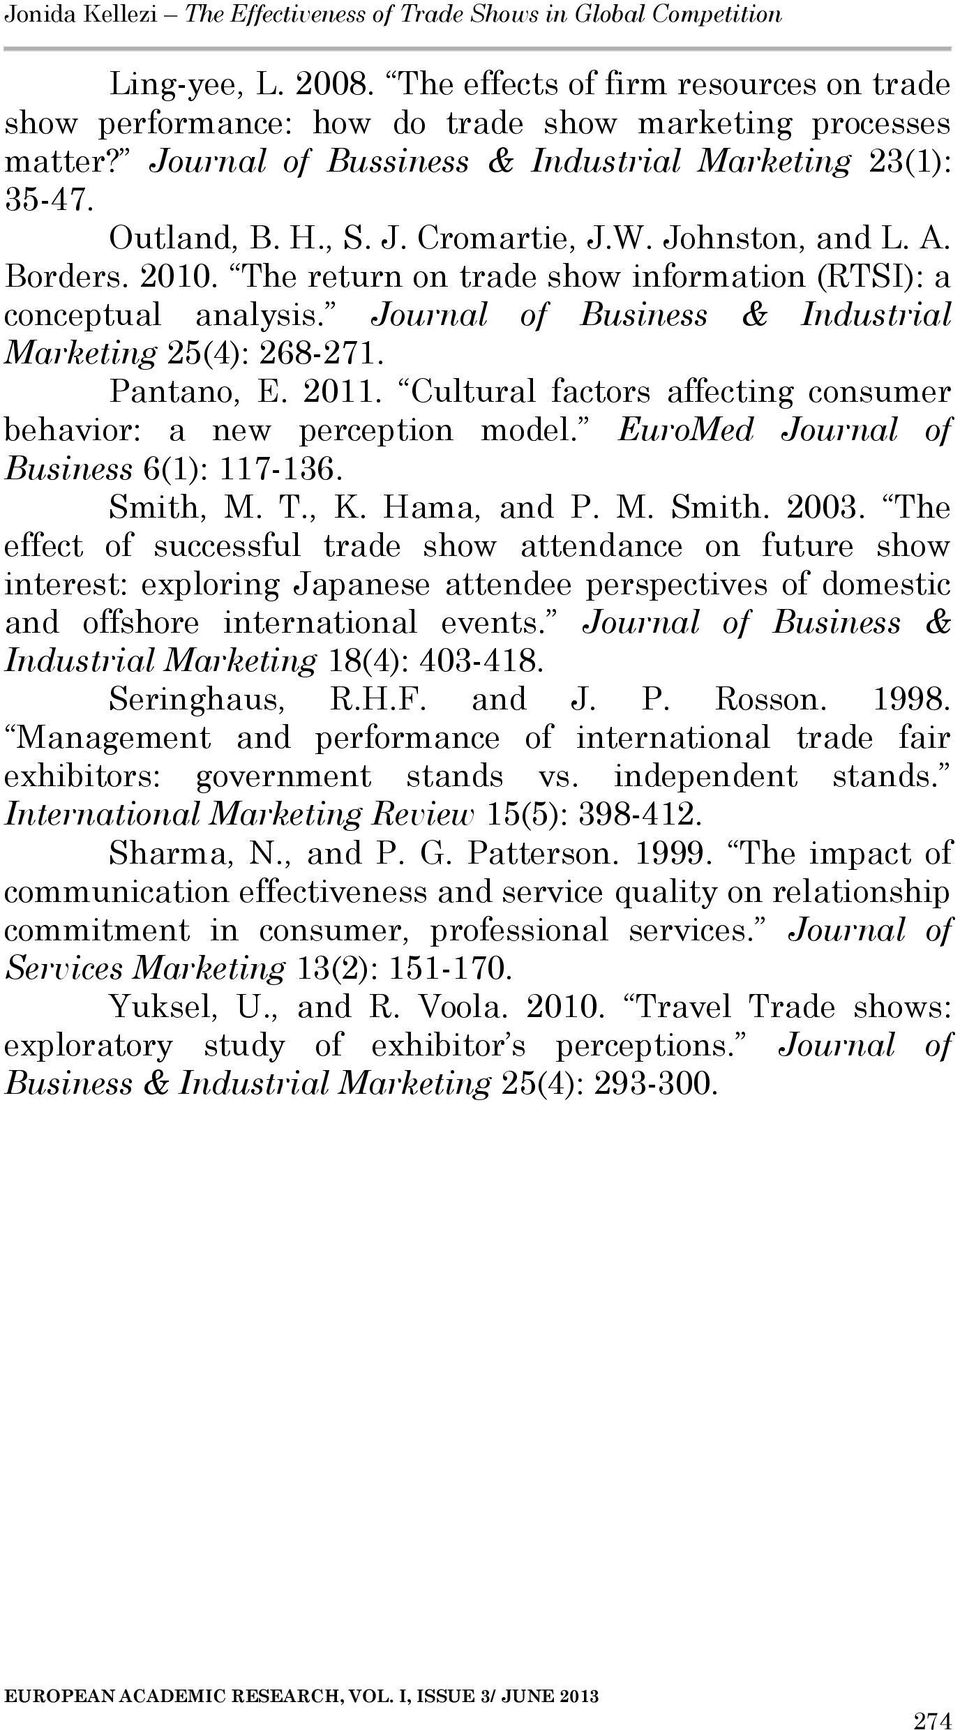 Cultural factors affecting consumer behavior: a new perception model. EuroMed Journal of Business 6(1): 117-136. Smith, M. T., K. Hama, and P. M. Smith. 2003.